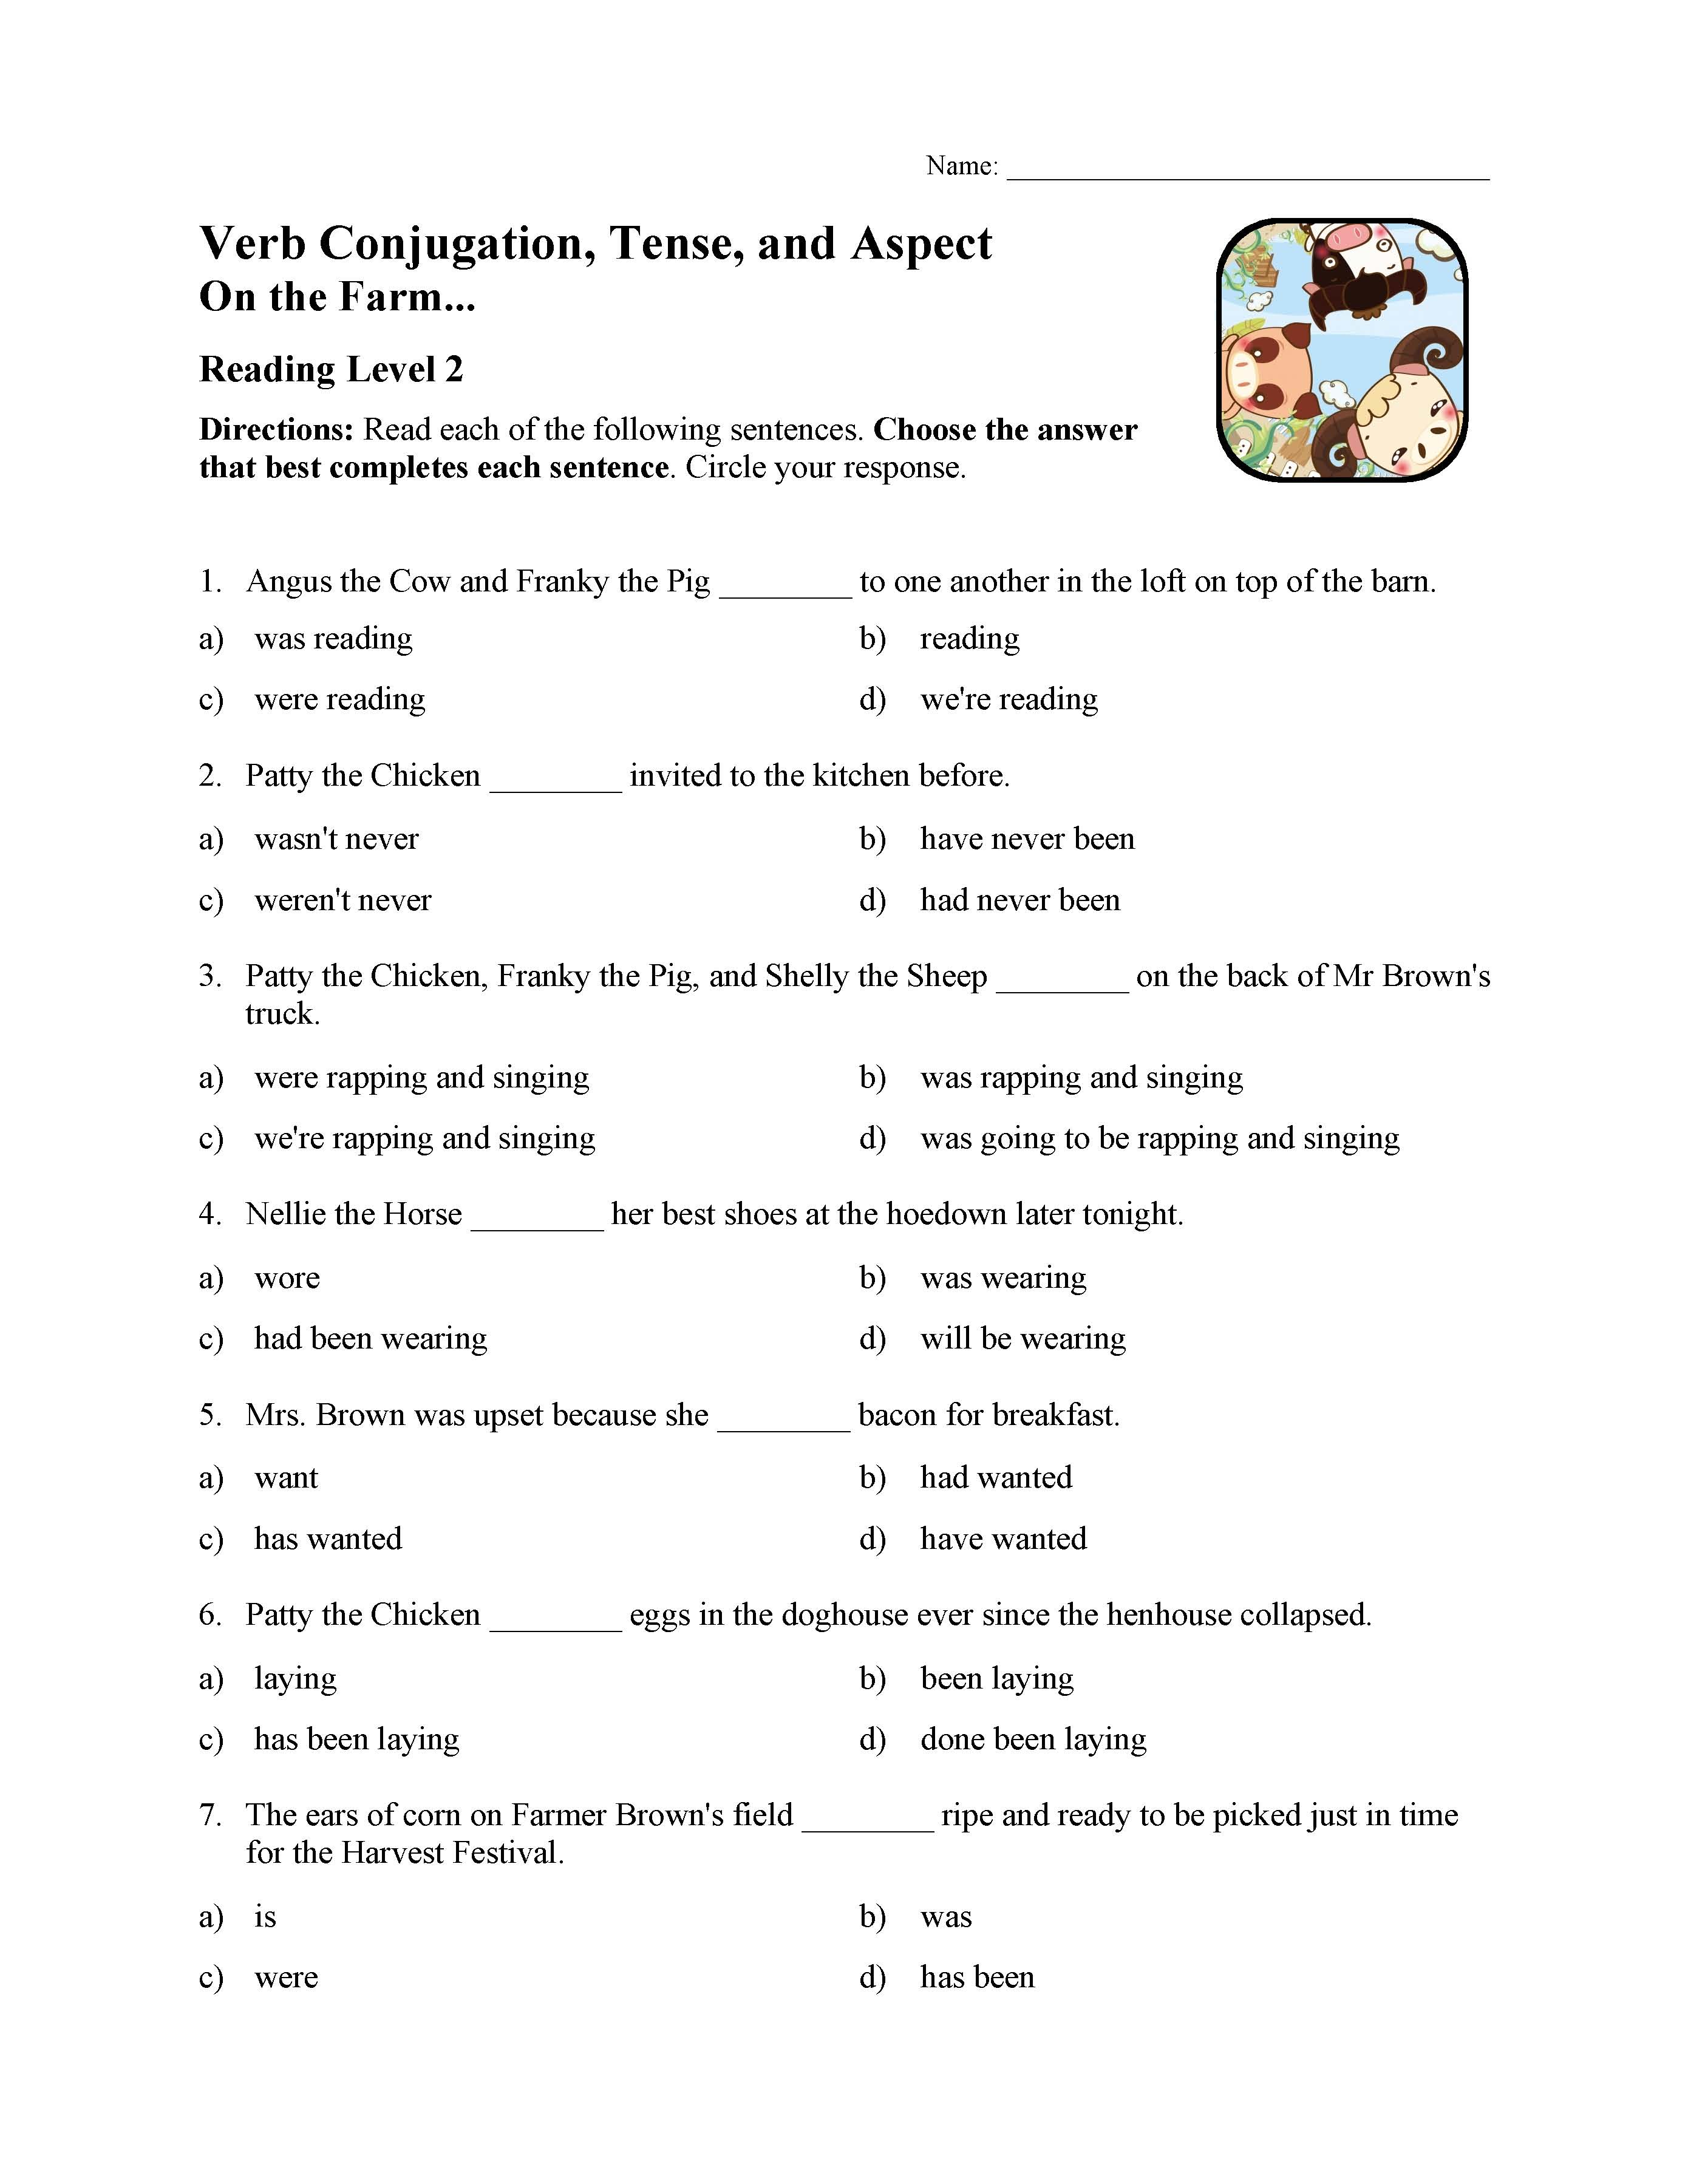 - Verb Conjugation, Tense, And Aspect Test - On The Farm Reading